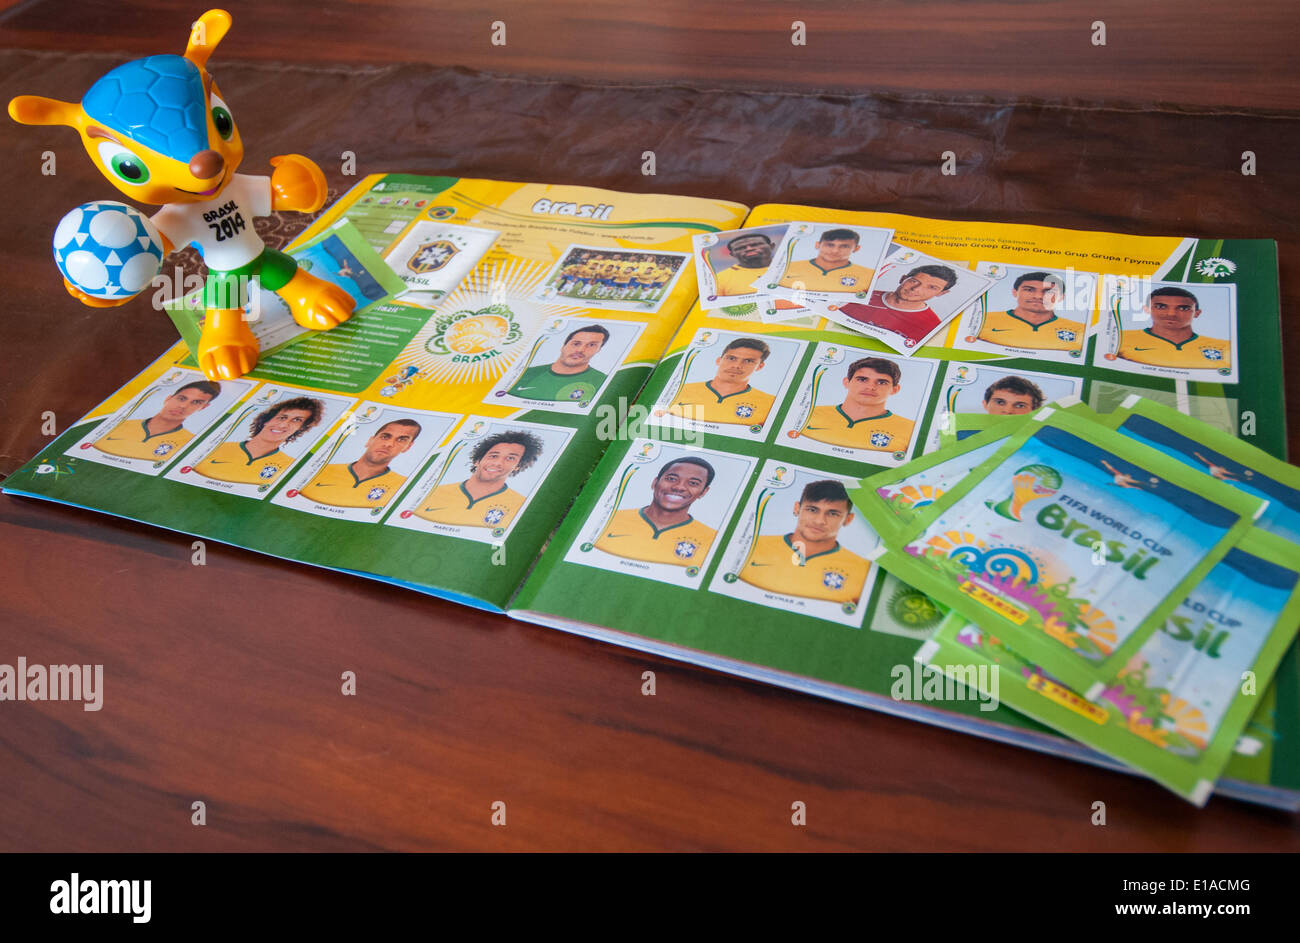 Collector cards and the Mascot of the World Cup 2014 in Brasilia Brazil, in anticipation of the June 2014 soccer games - Stock Image